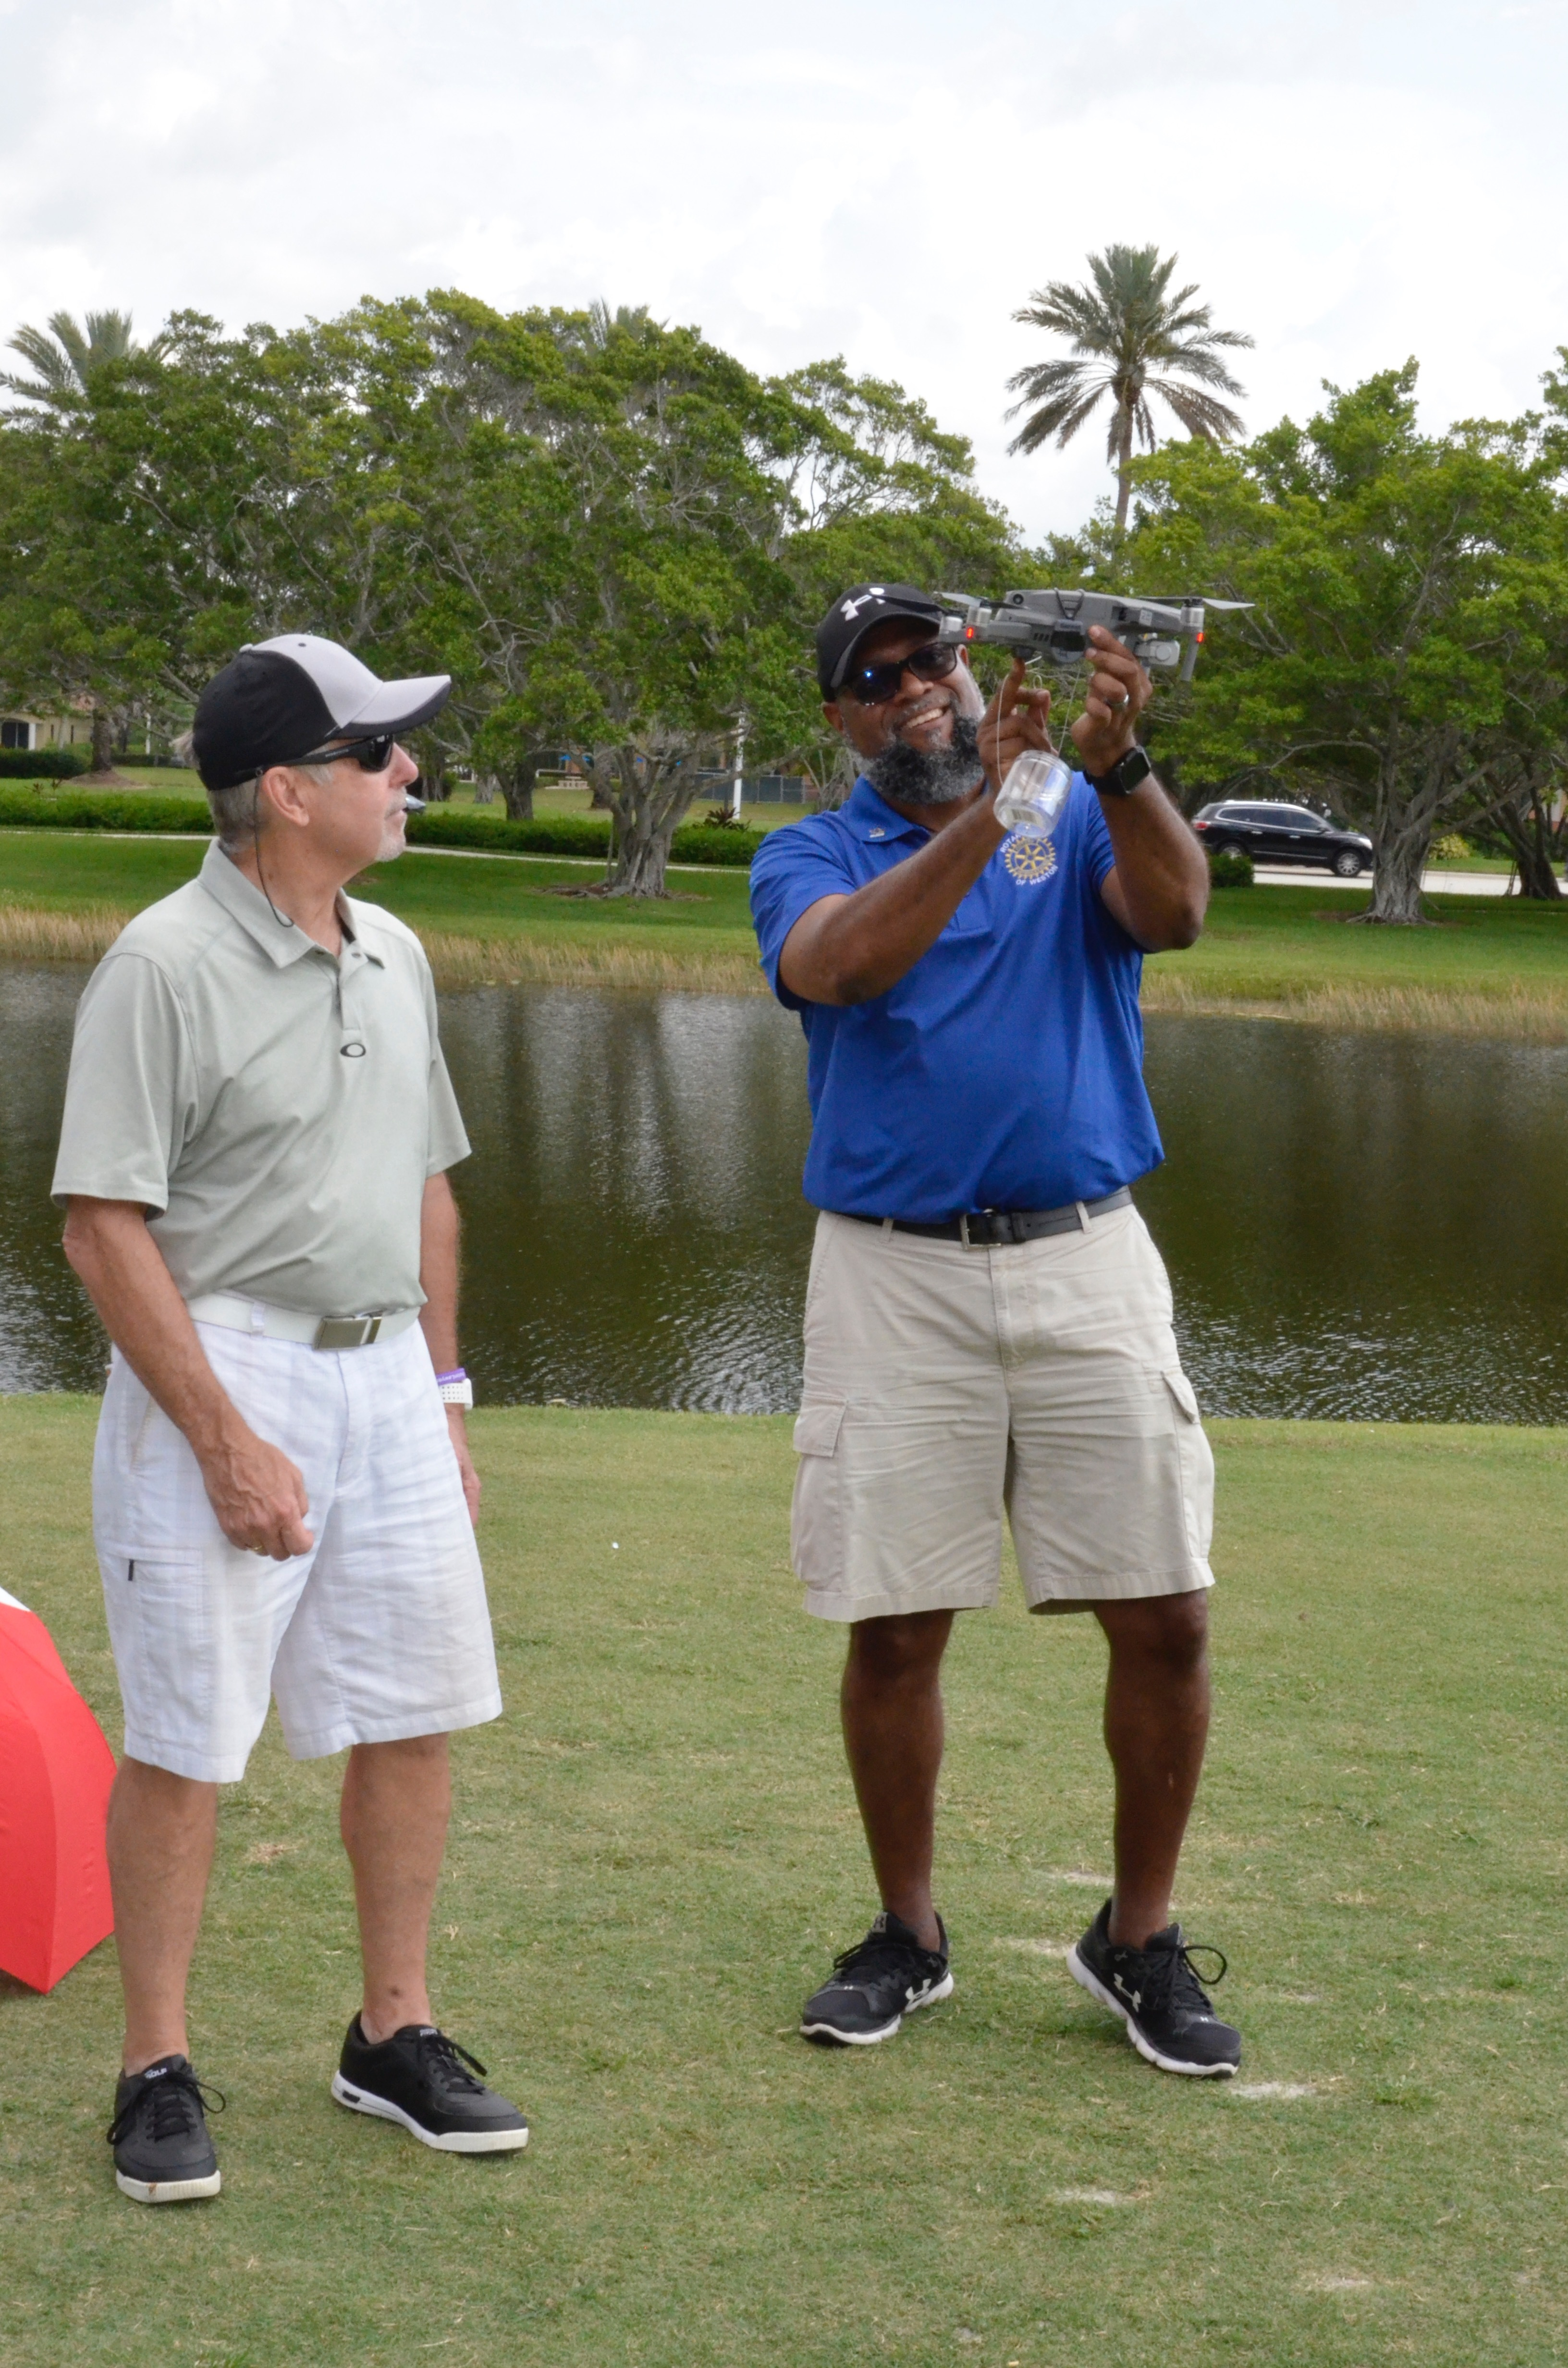 33rd Annual Rotary Golf Classic Sponsored by FHVLEGAL.COM gallery image #10